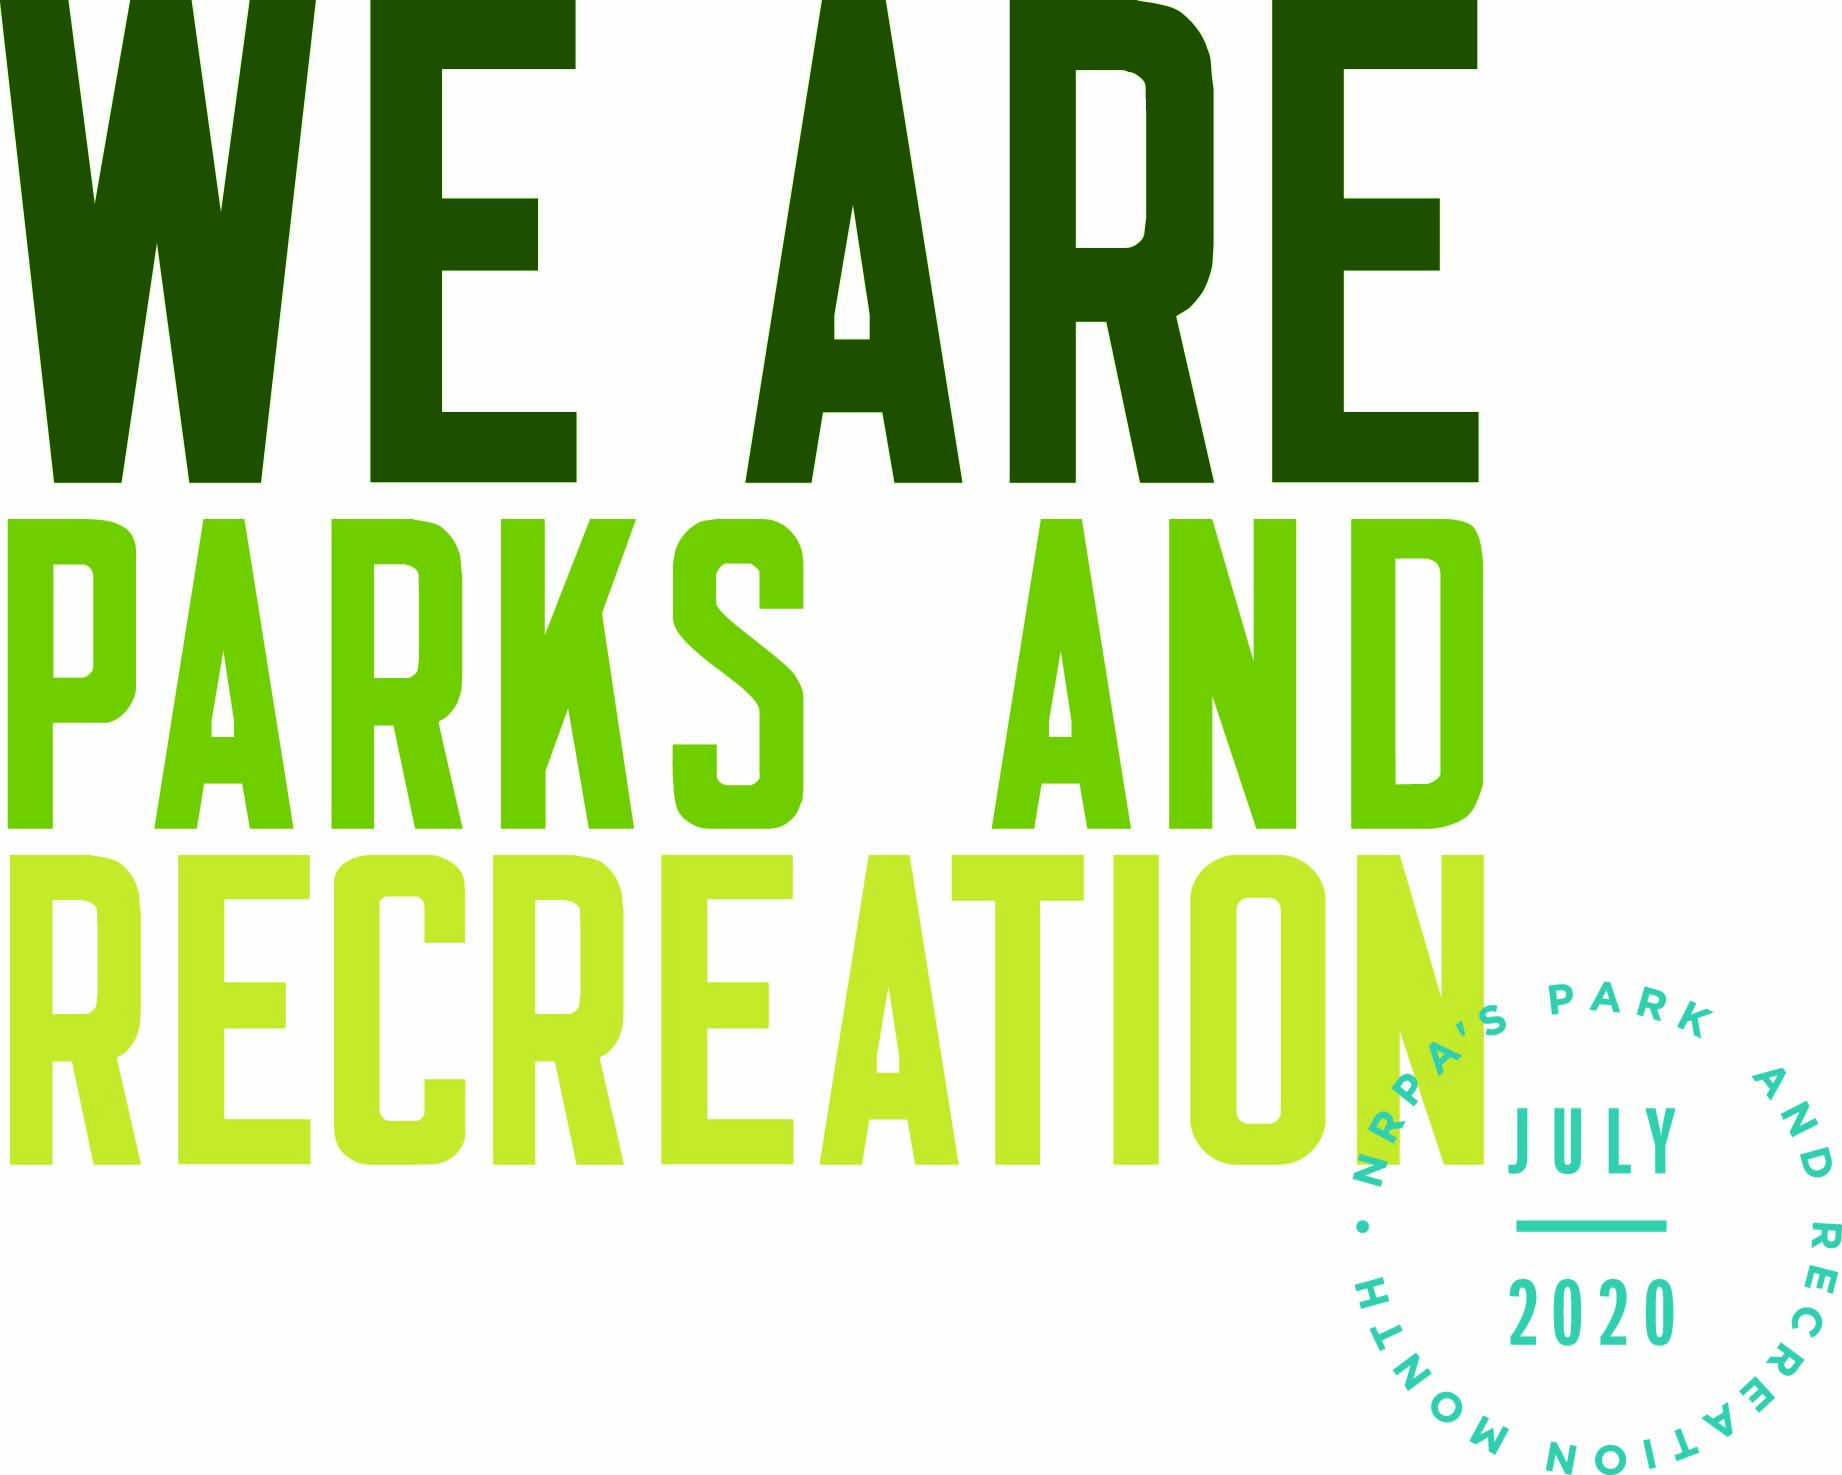 Park and Recreation Month 2020